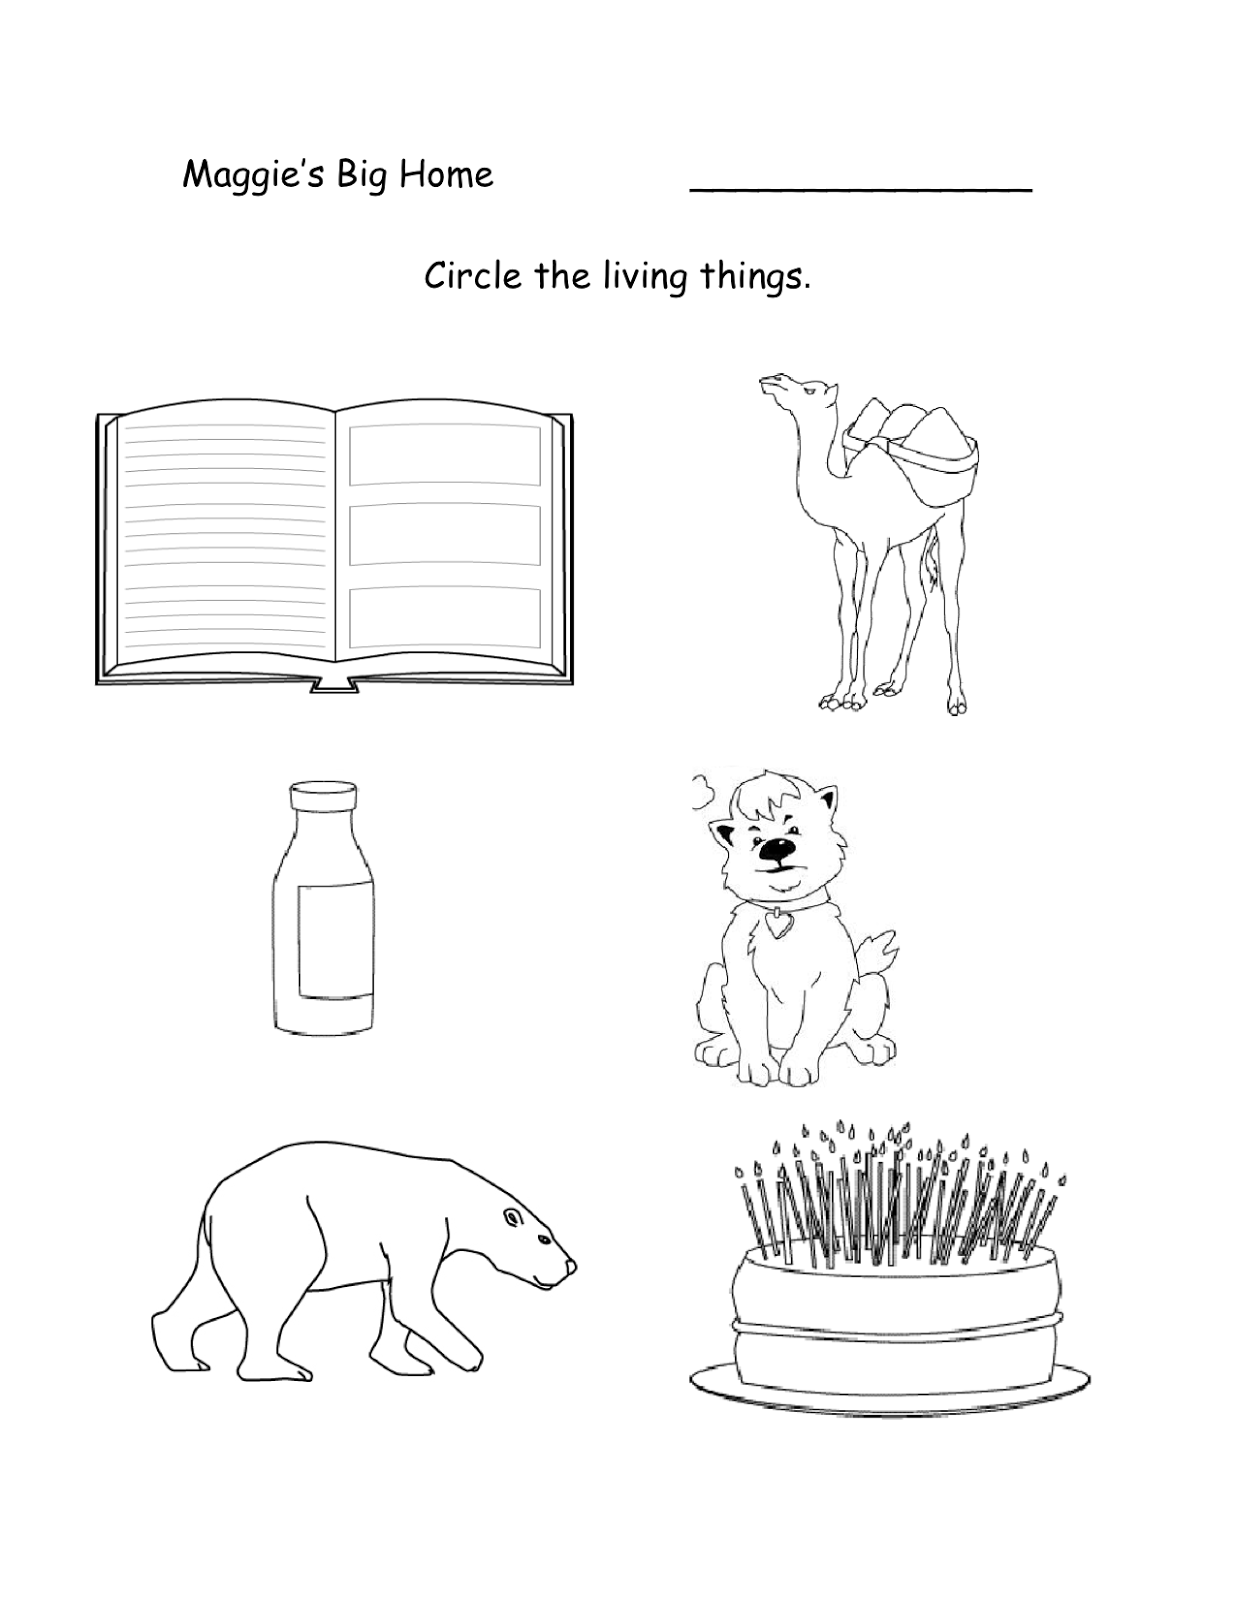 Maggies Big Home Living Things – Living Things Worksheet